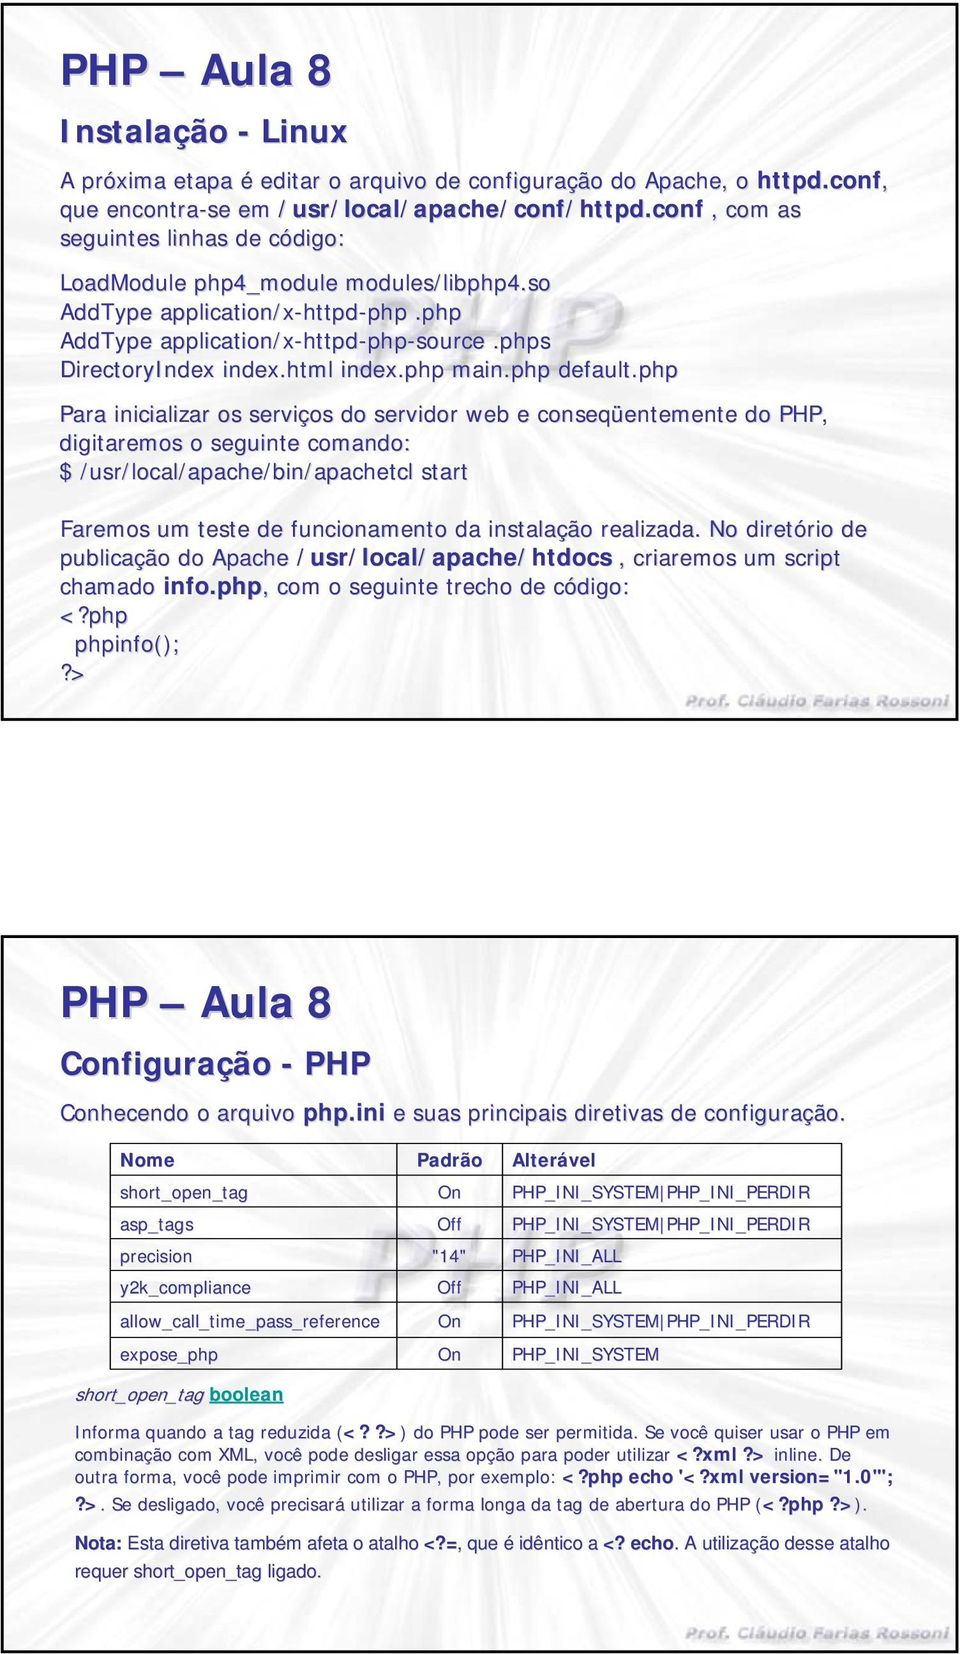 phps DirectoryIndex index.html index.php php main.php default.